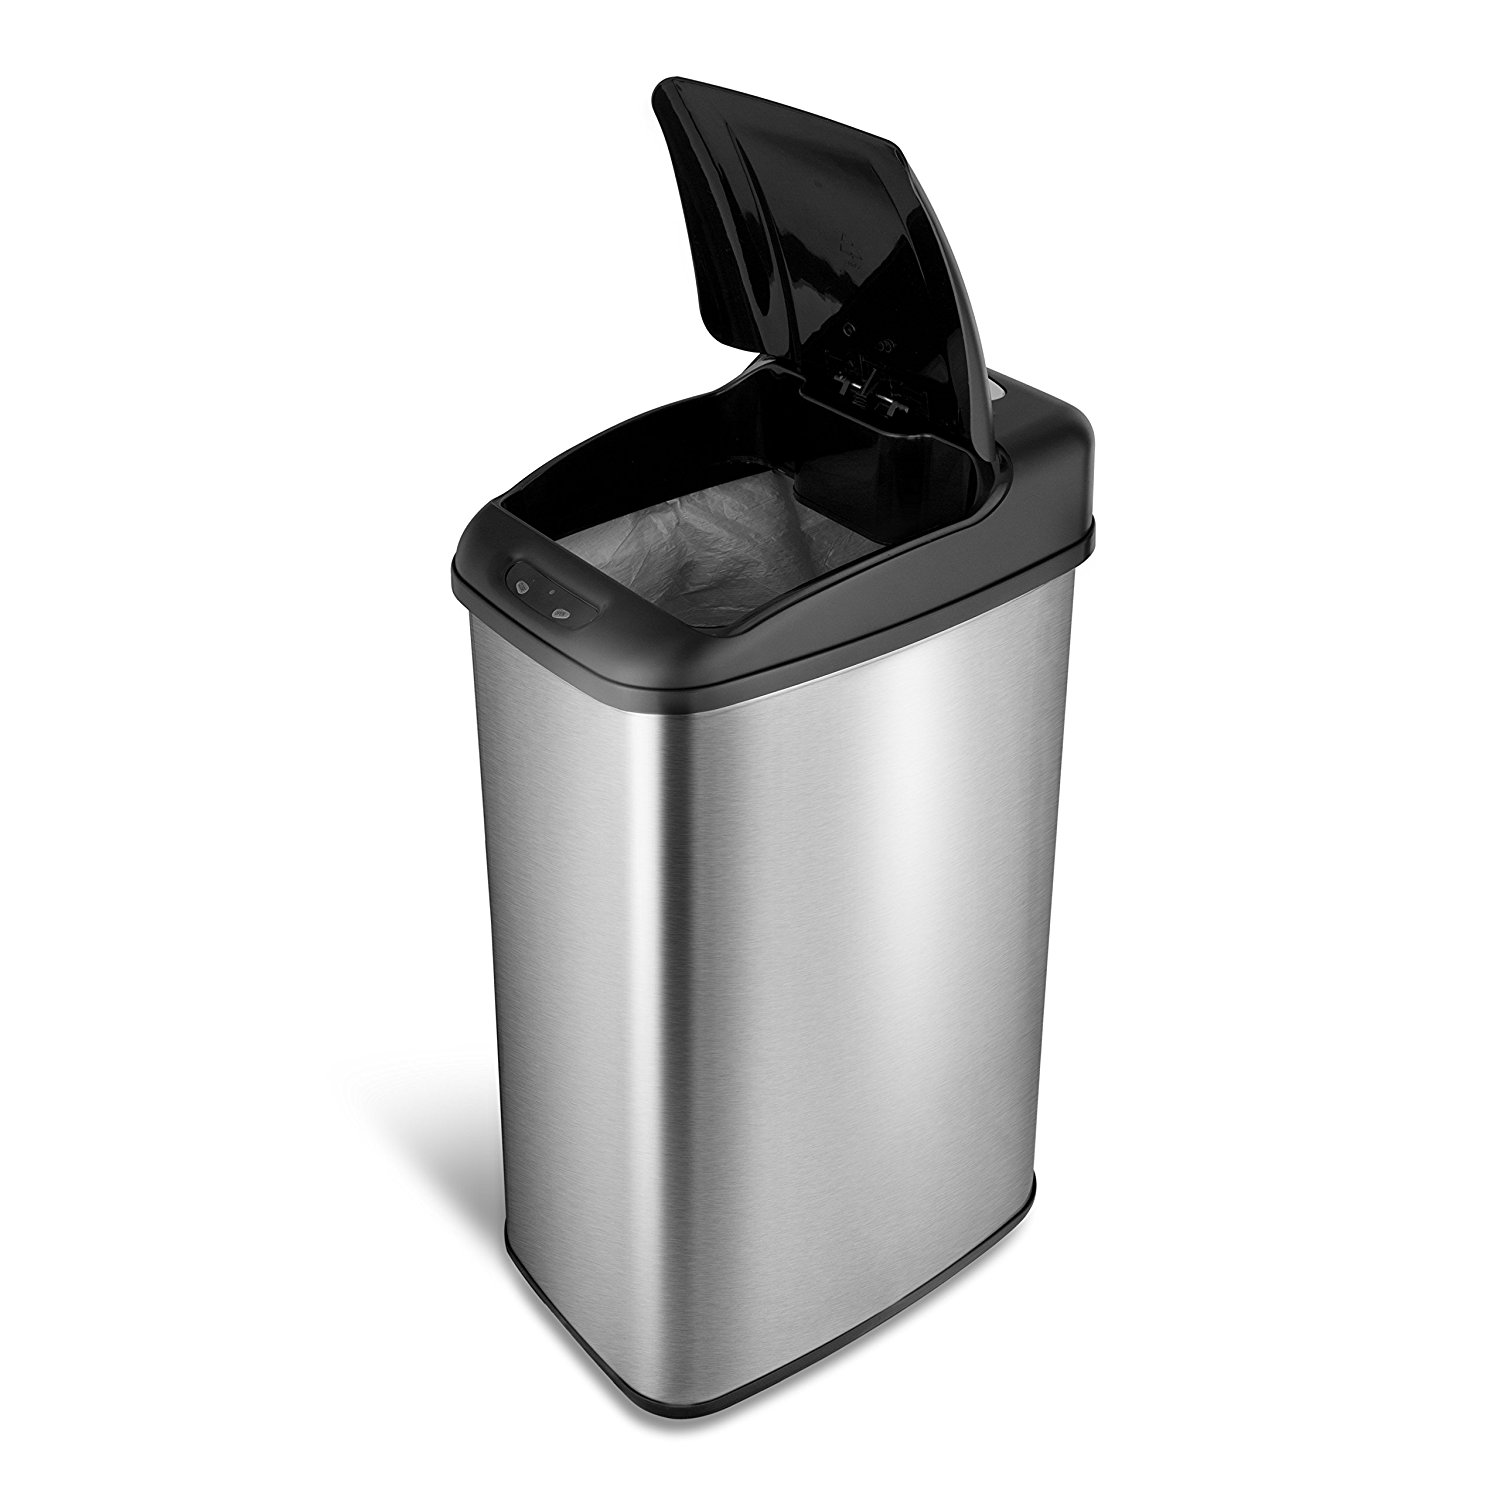 NINESTARS DZT-50-6 The Original Automatic Motion Sensor Trash Can, 13.2 Gal. / 50 L., Stainless Steel